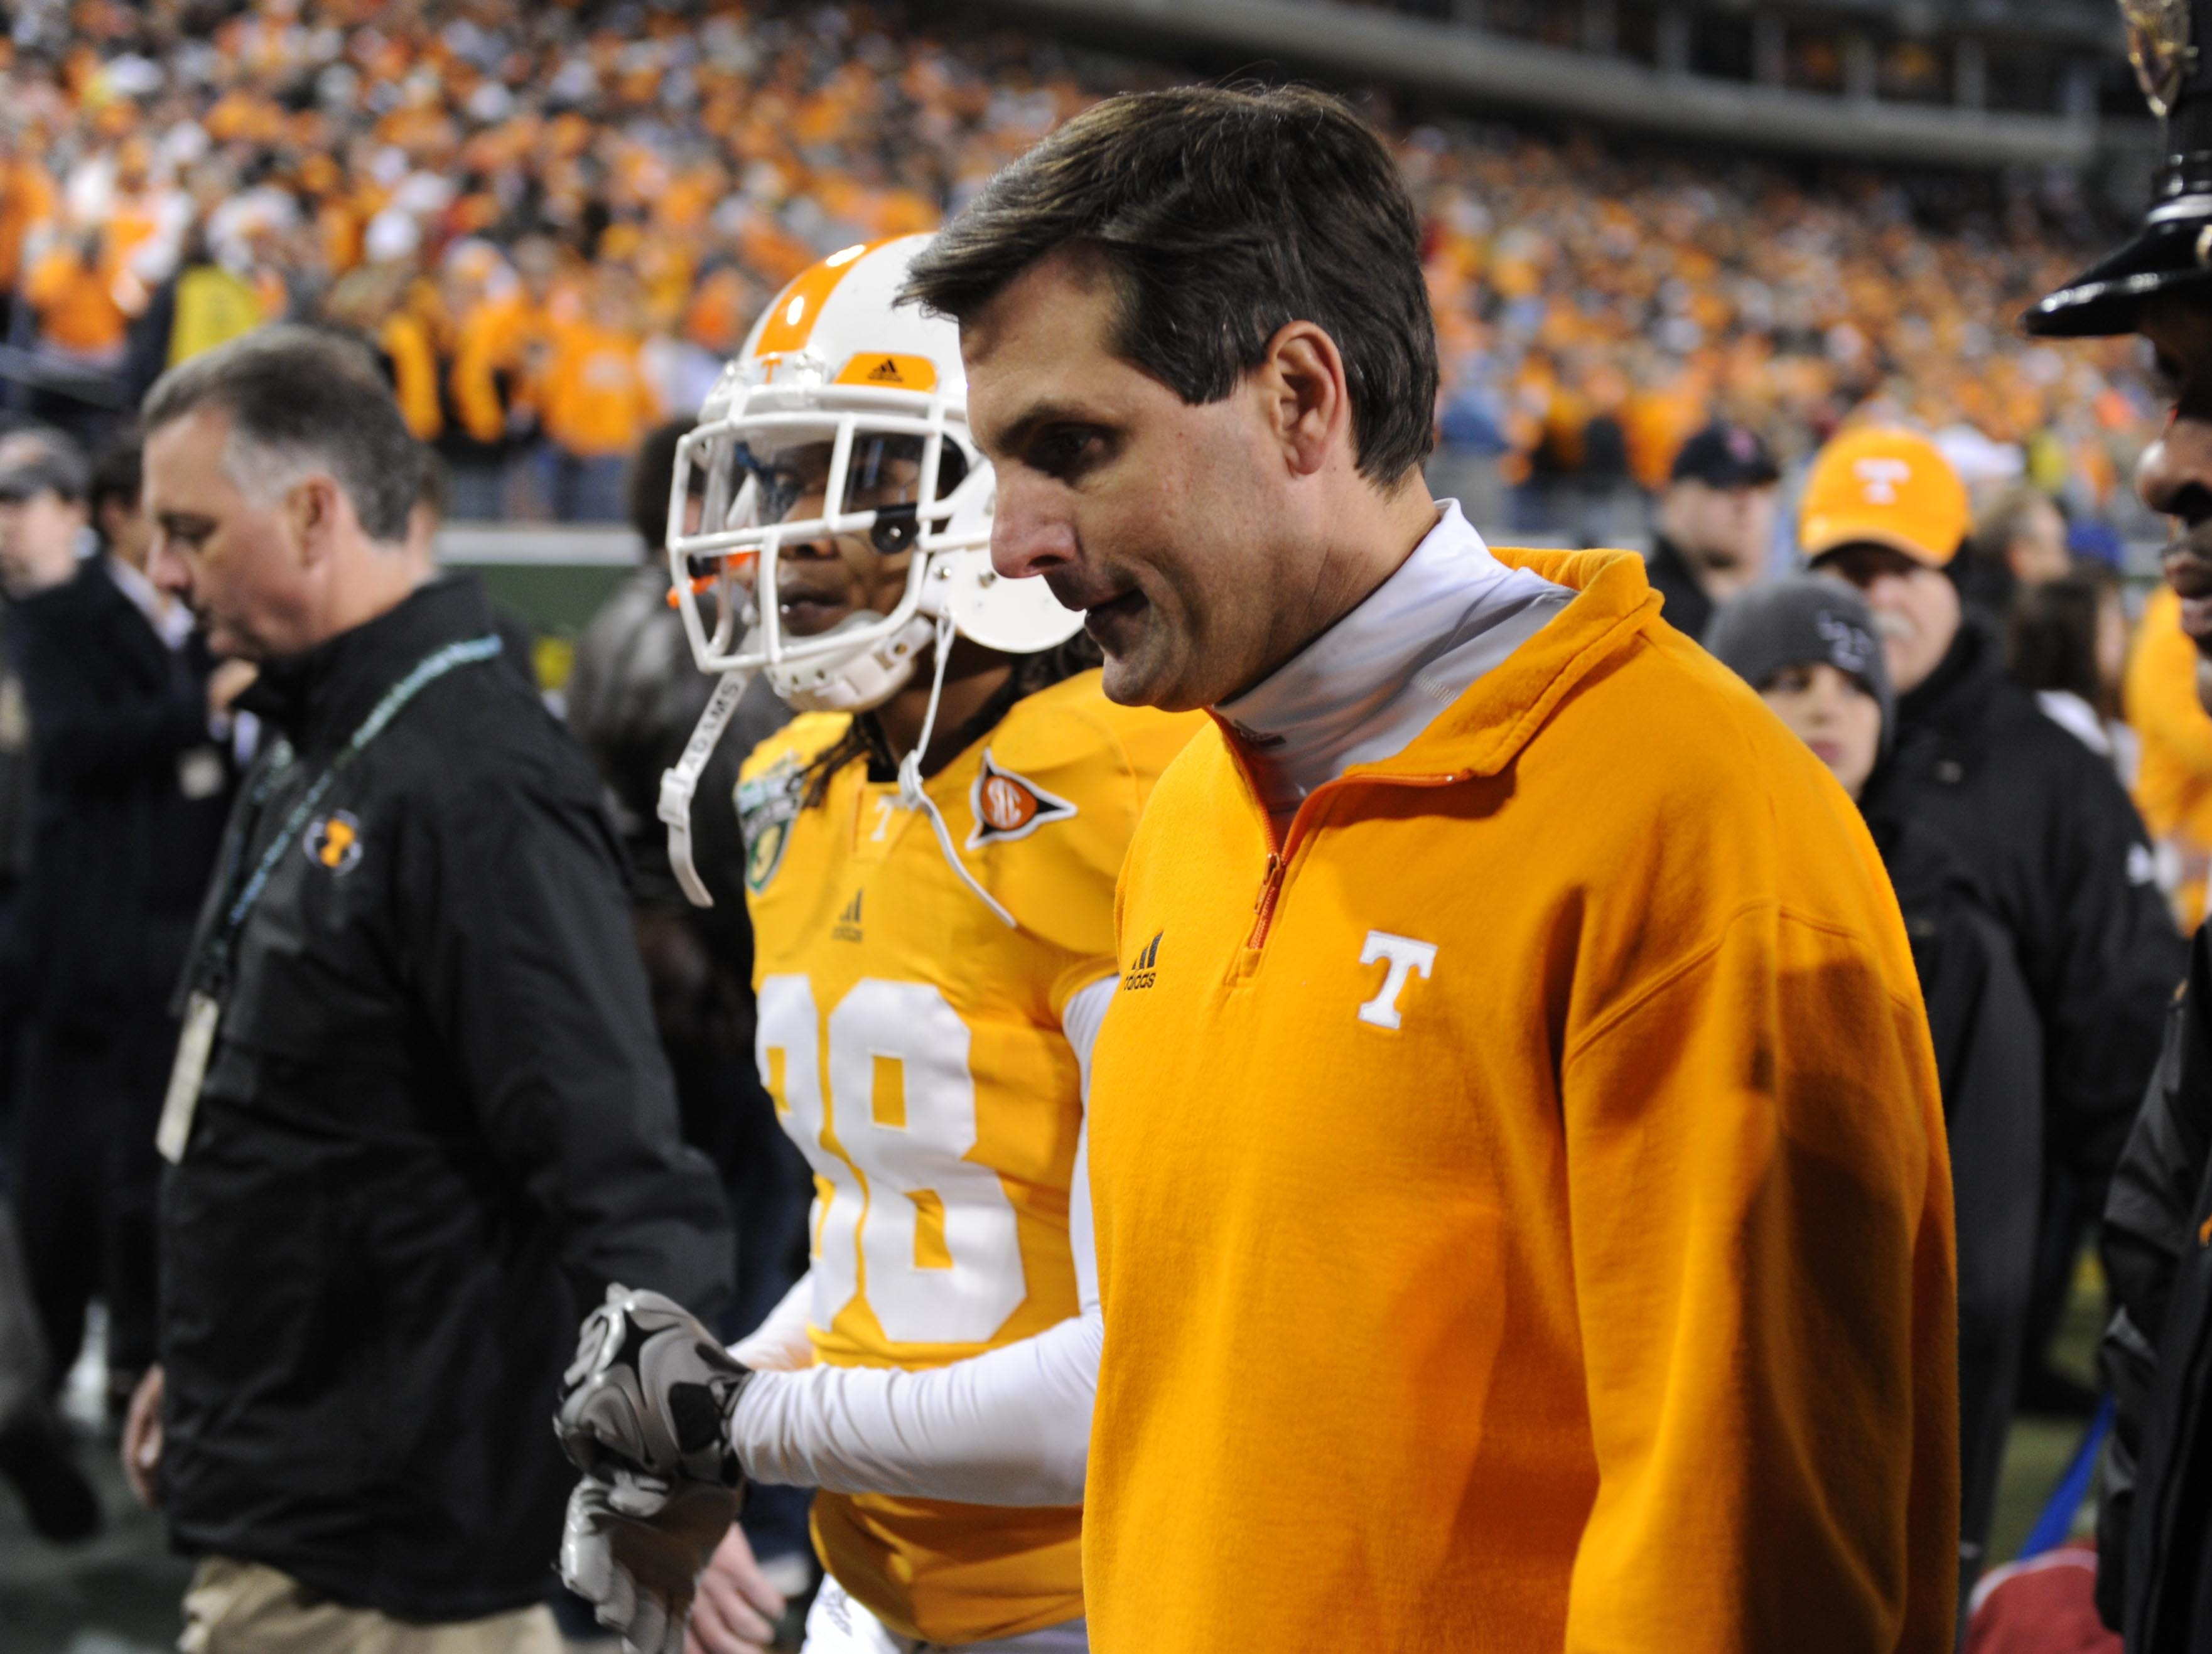 Tennessee head coach Derek Dooley leaves the field after their 30-27 loss in double overtime to North Carolina Thursday, Dec. 30, 2010 in the Music City Bowl in Nashville at LP Field.